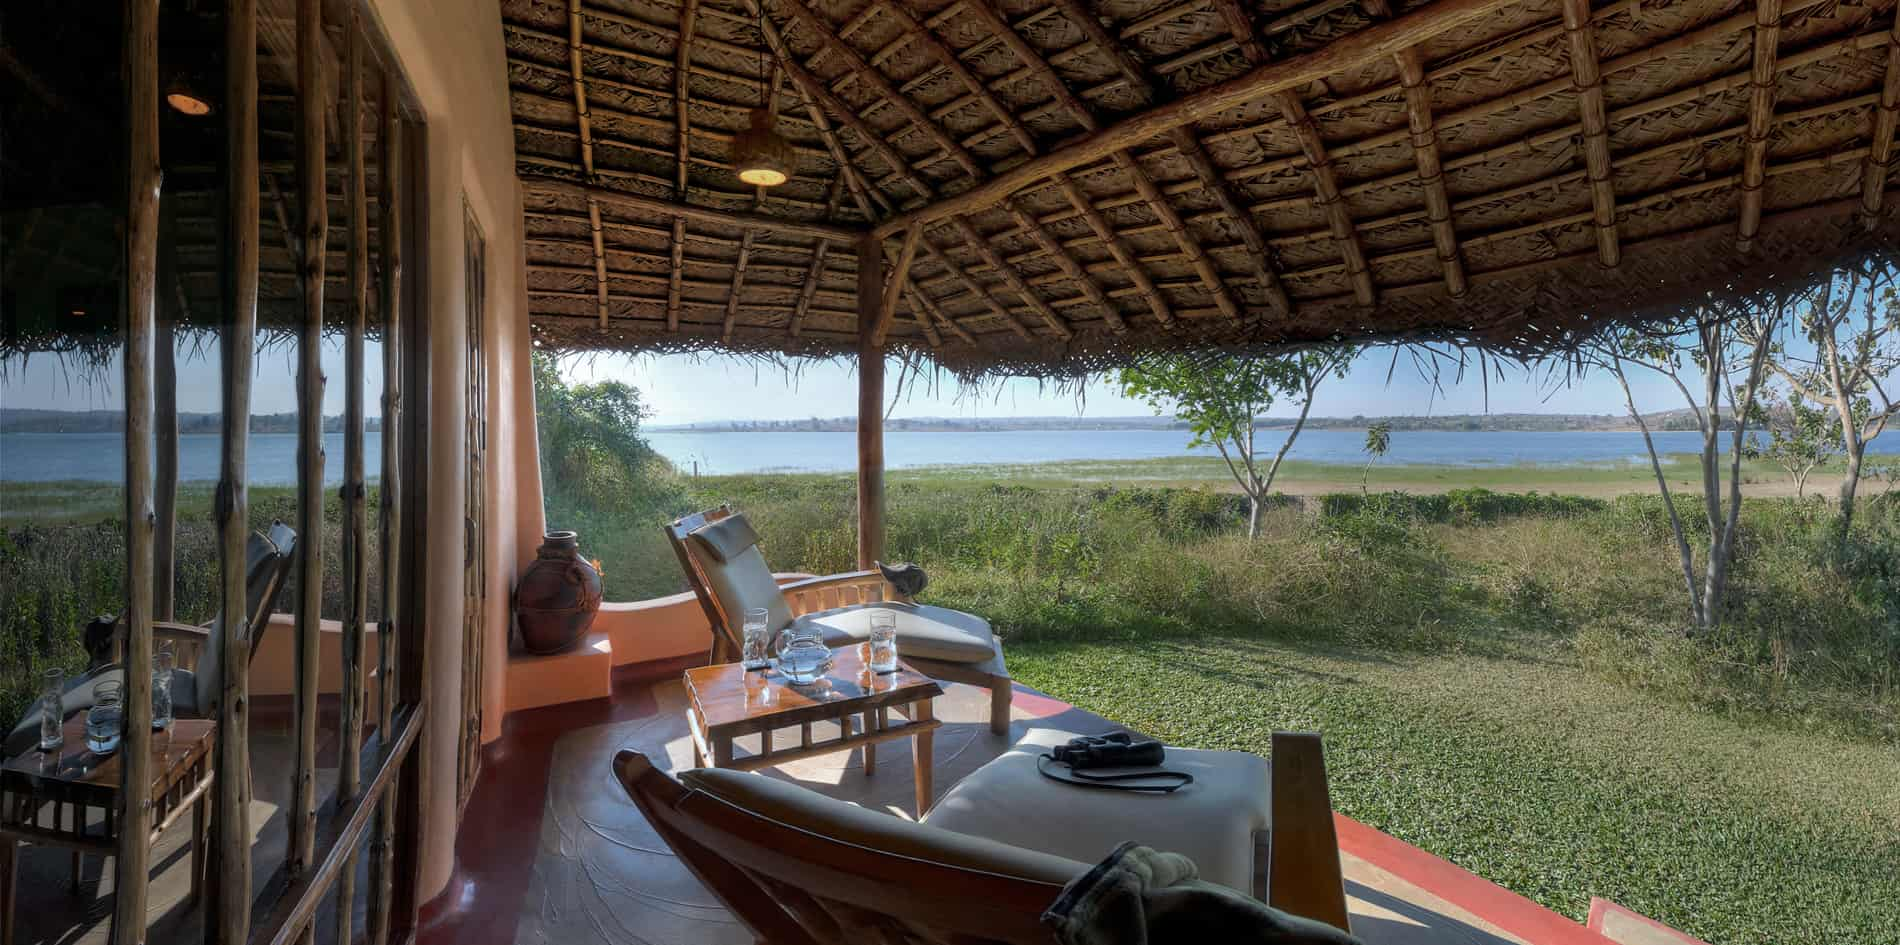 Sit out Pano at Kabini, Orange County Resorts